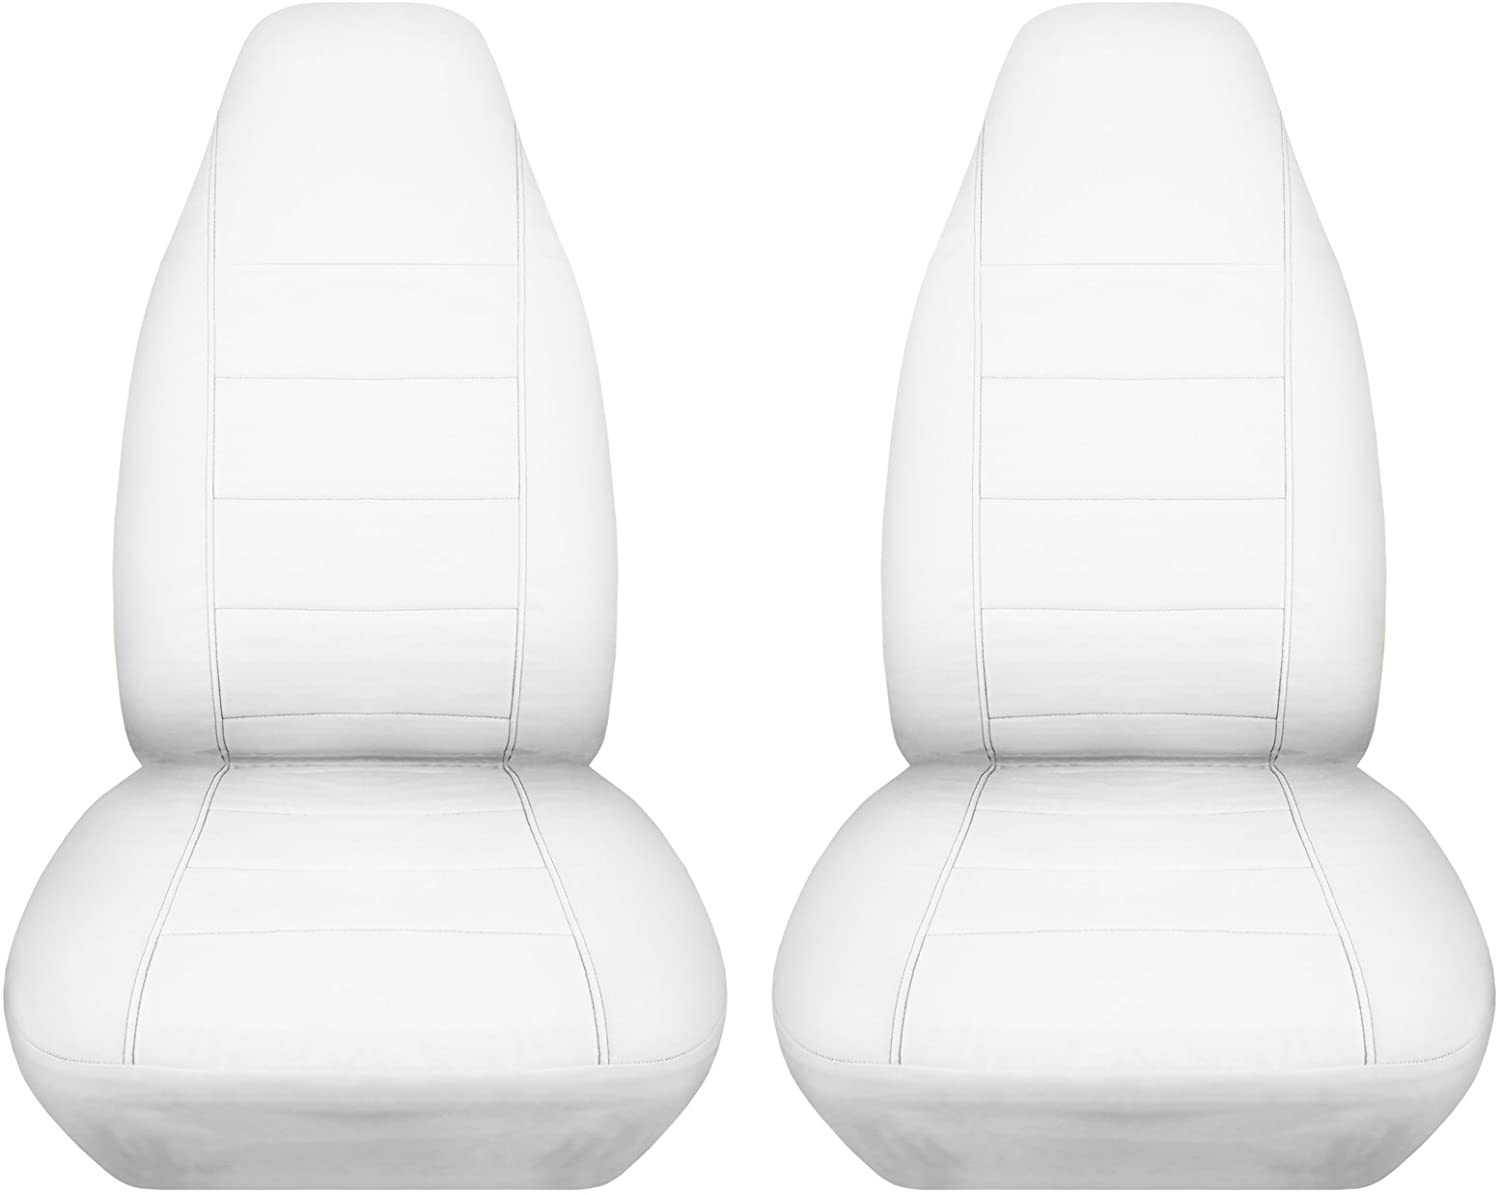 How To Make Car Seat Covers >> Amazon Com Solid Car Seat Covers White Semi Custom Fit Front